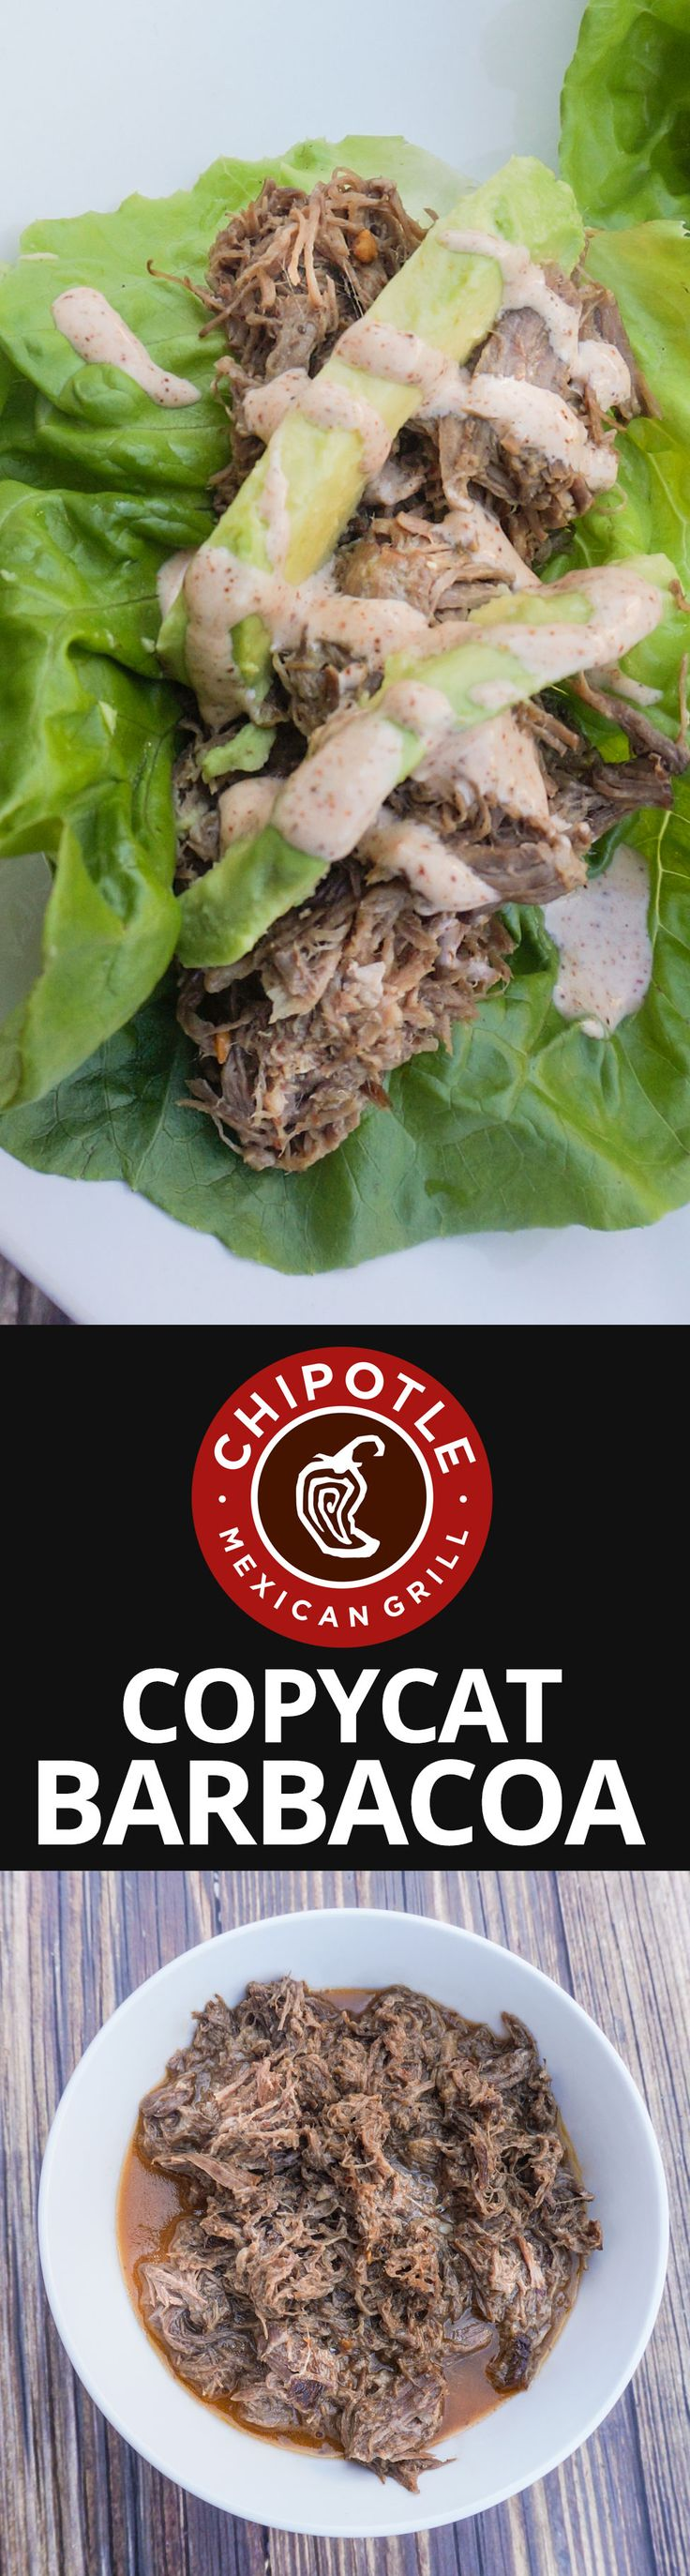 The only Chipotle Barbacoa recipe you'll ever need!